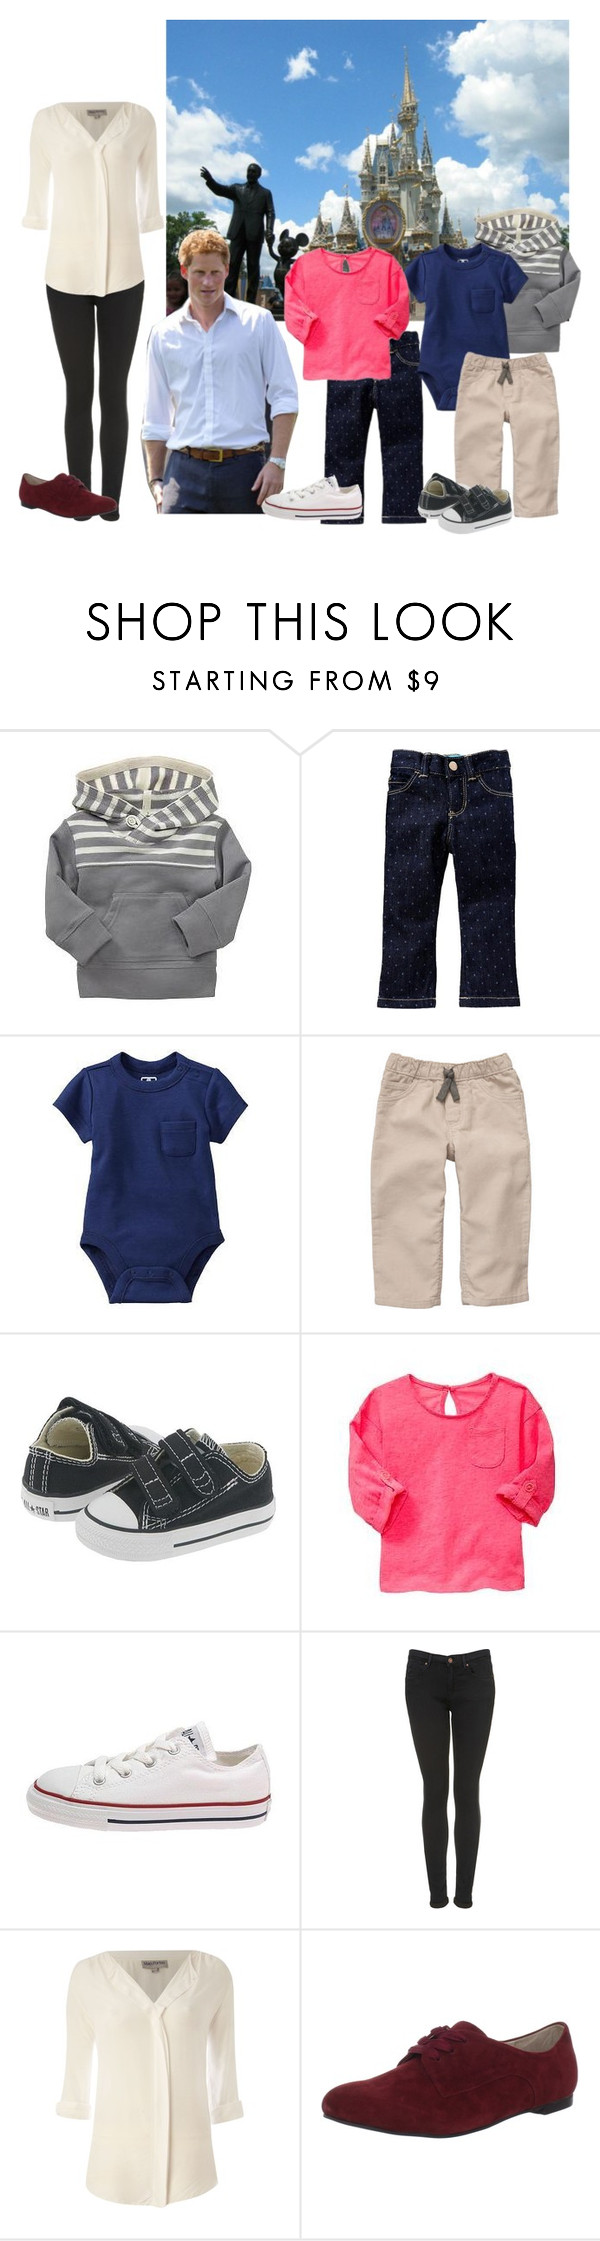 """""""Harry and His Wife Visiting Walt Disney World With Their Children"""" by royally-dressed ❤ liked on Polyvore featuring Disney, Gap, Old Navy, Citizen, Converse, Topshop, Mary Portas, All Black and prince harry"""